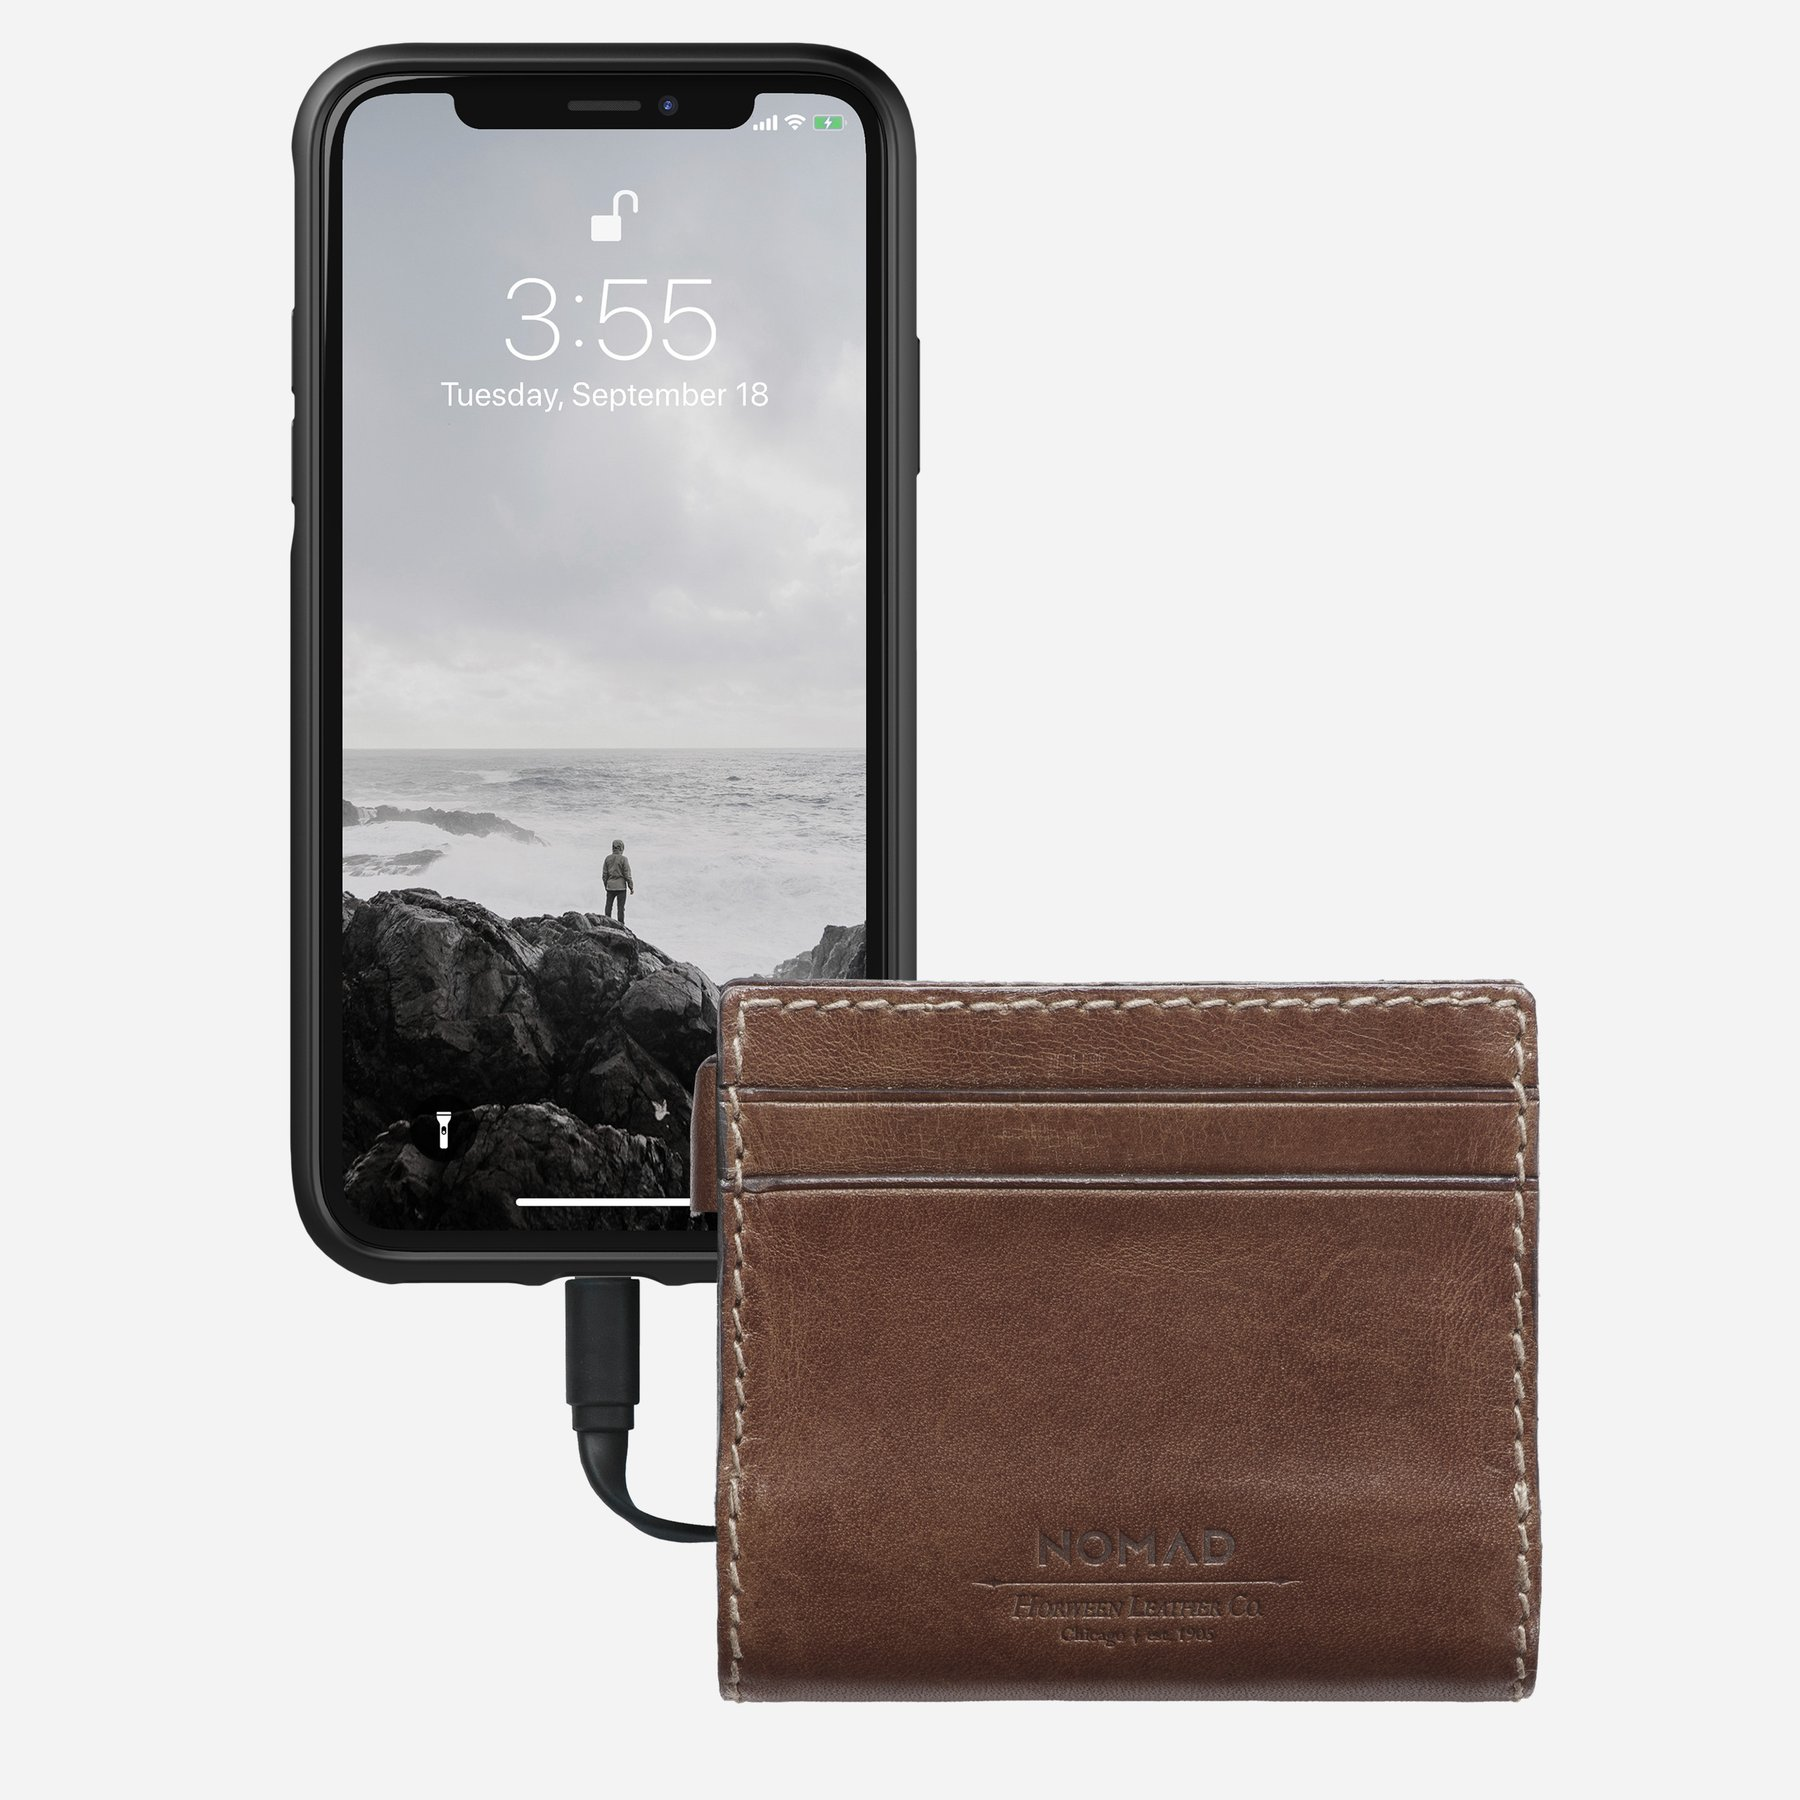 NOMAD-Charging-Wallet-Review.jpg